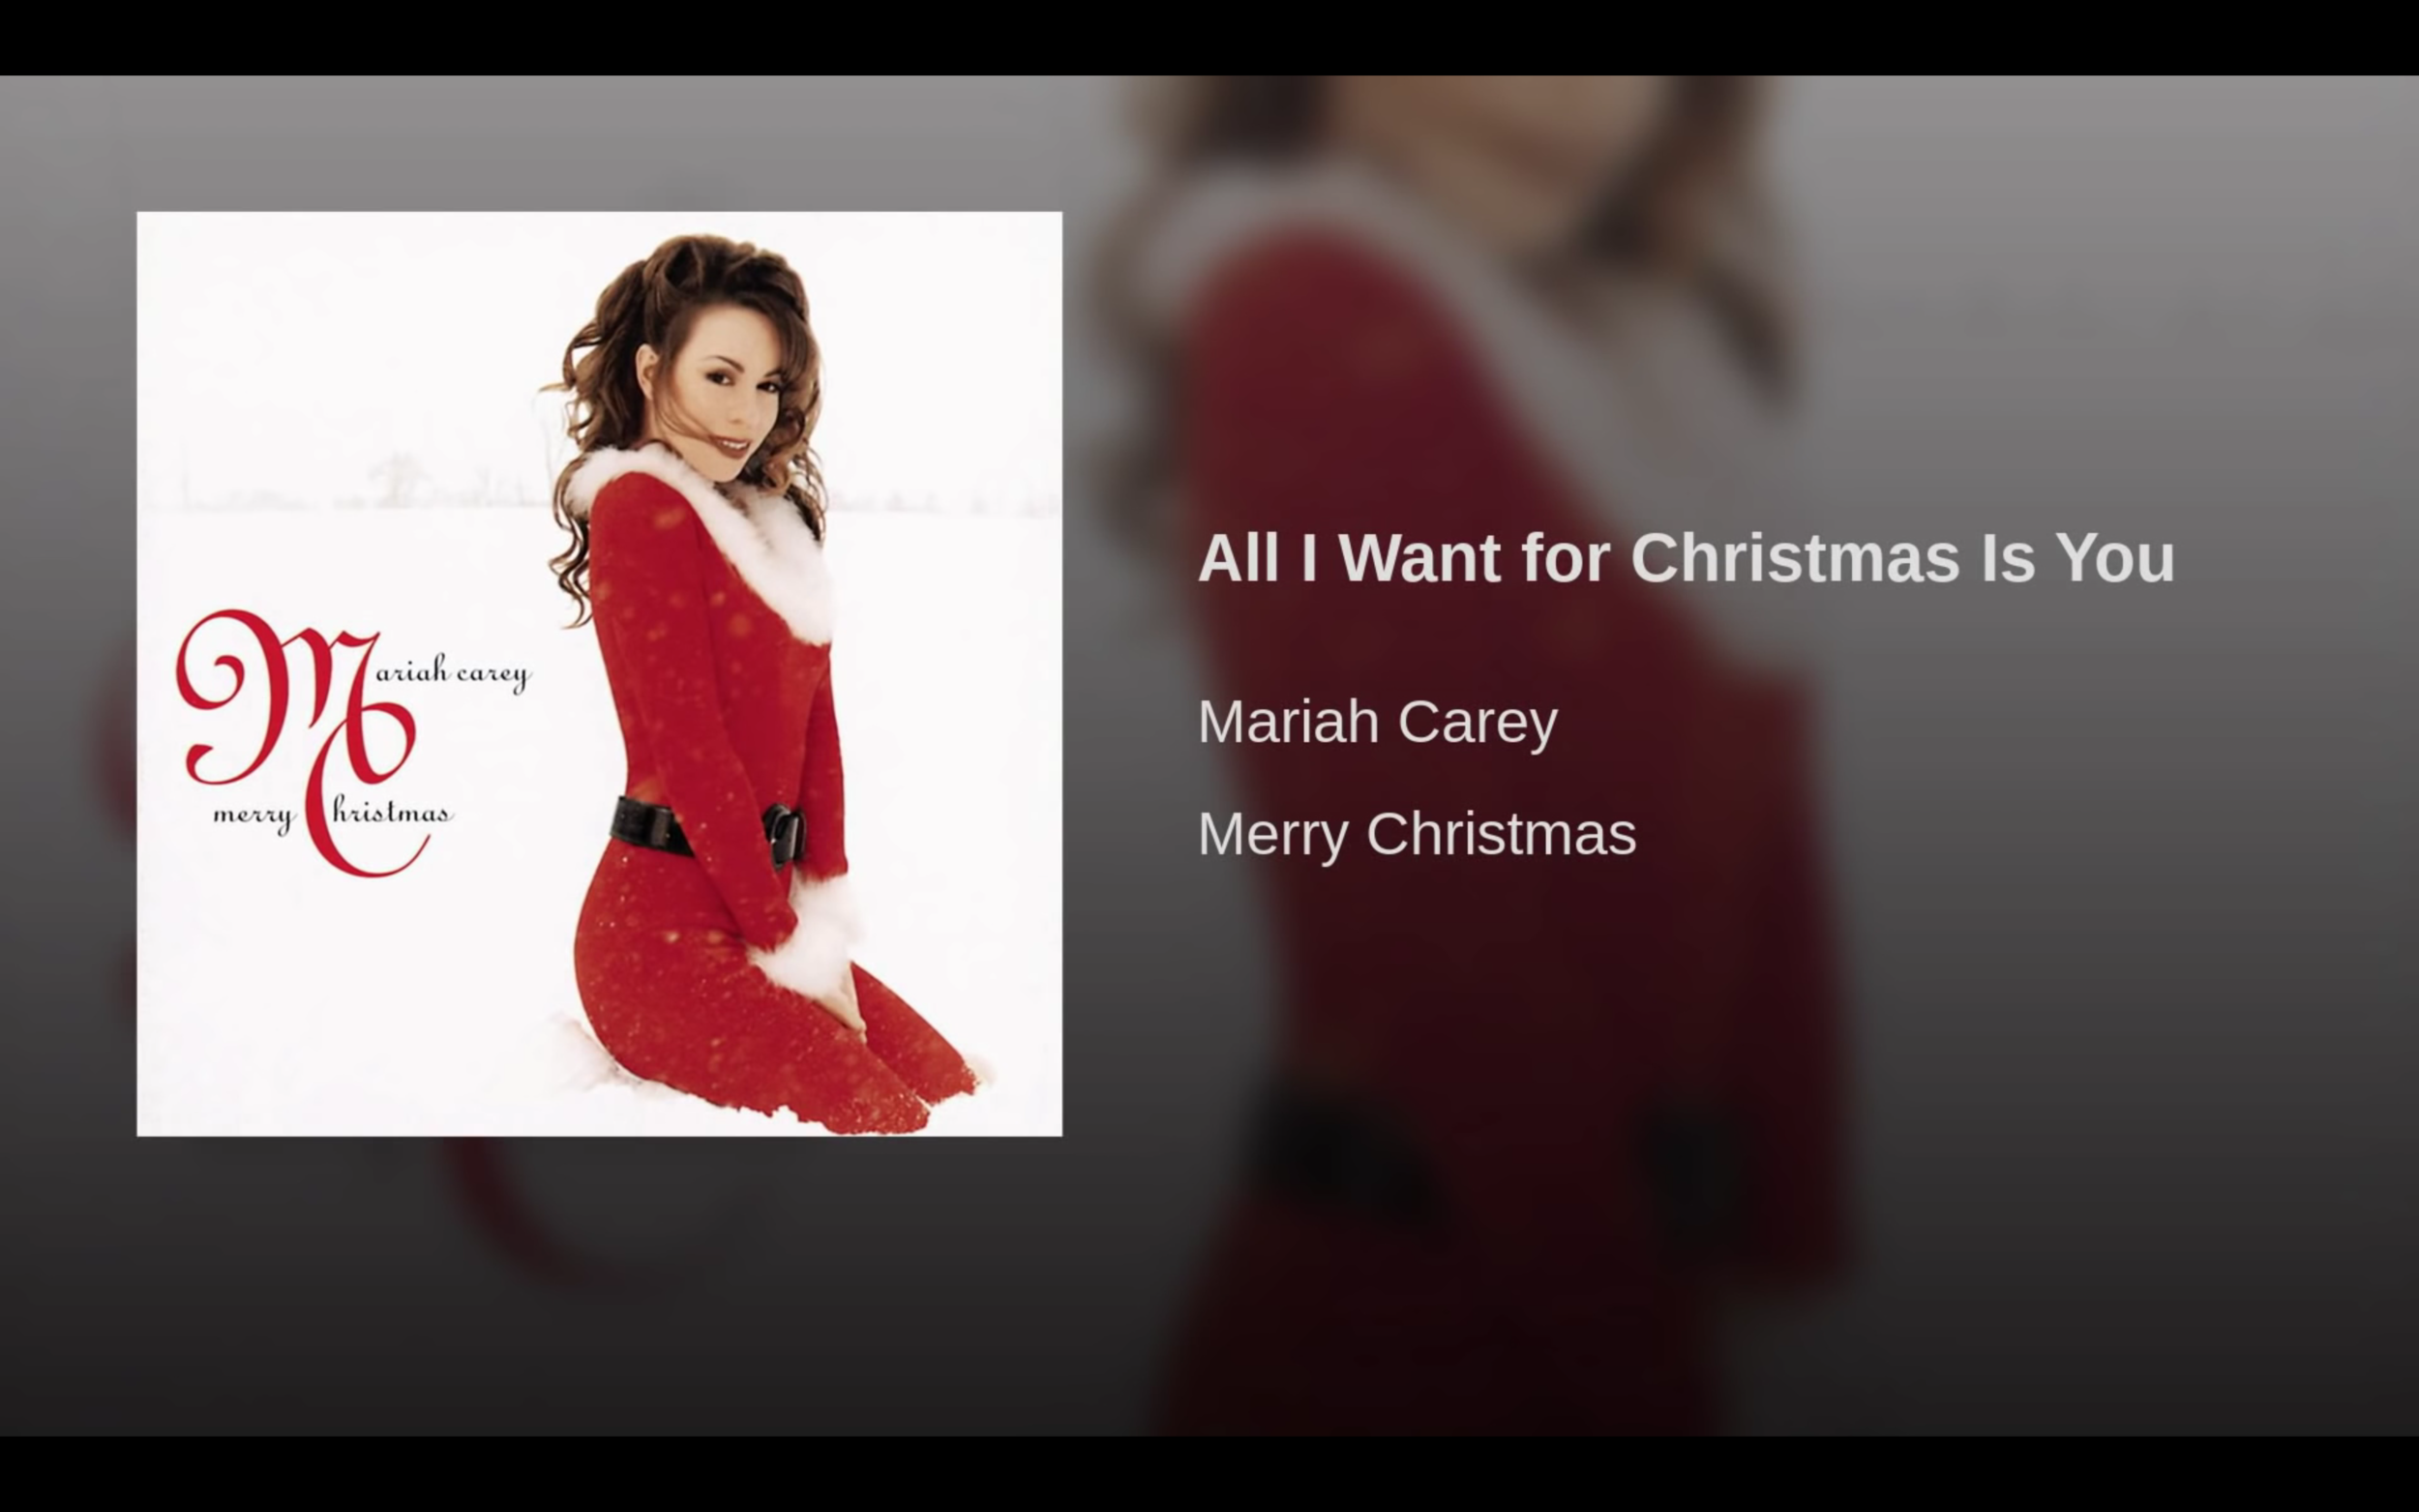 Youtube Mariah Carey Christmas.The Best Christmas Songs The Daily Campus